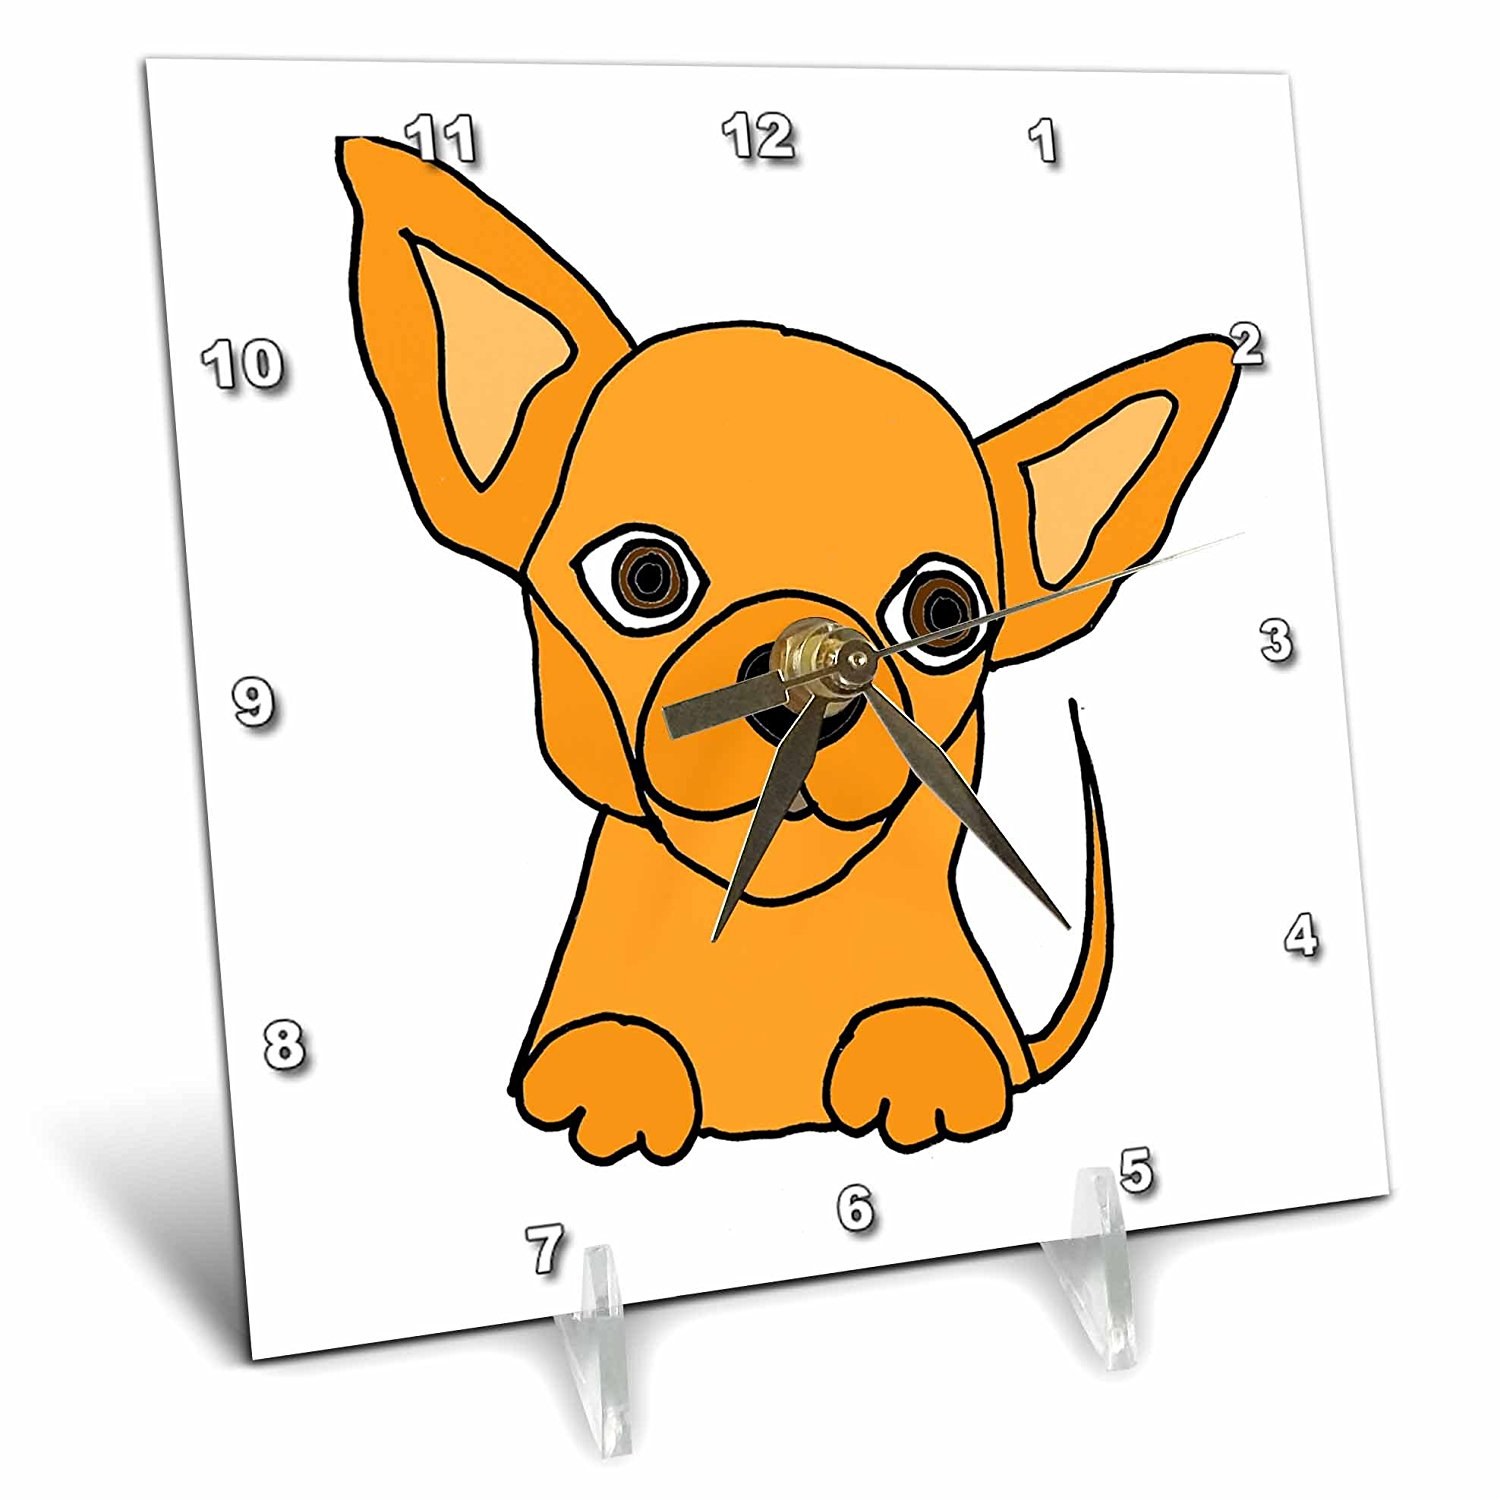 Outstanding Buy All Smiles Art Pets Funny Cute Chihuahua Puppy Dog Download Free Architecture Designs Scobabritishbridgeorg